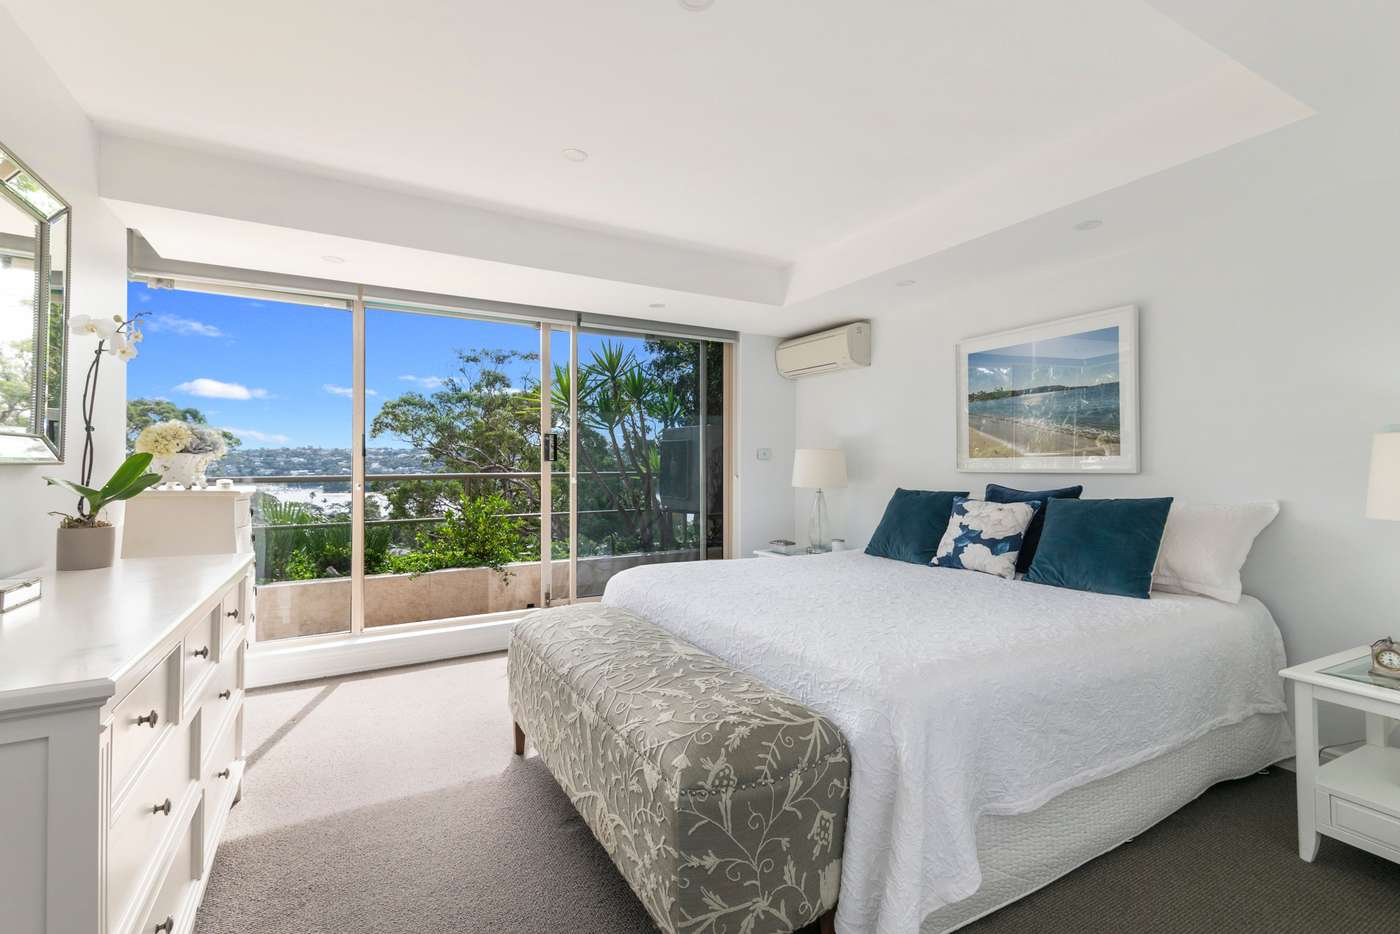 Sixth view of Homely apartment listing, 3/15 Warringah Road, Mosman NSW 2088